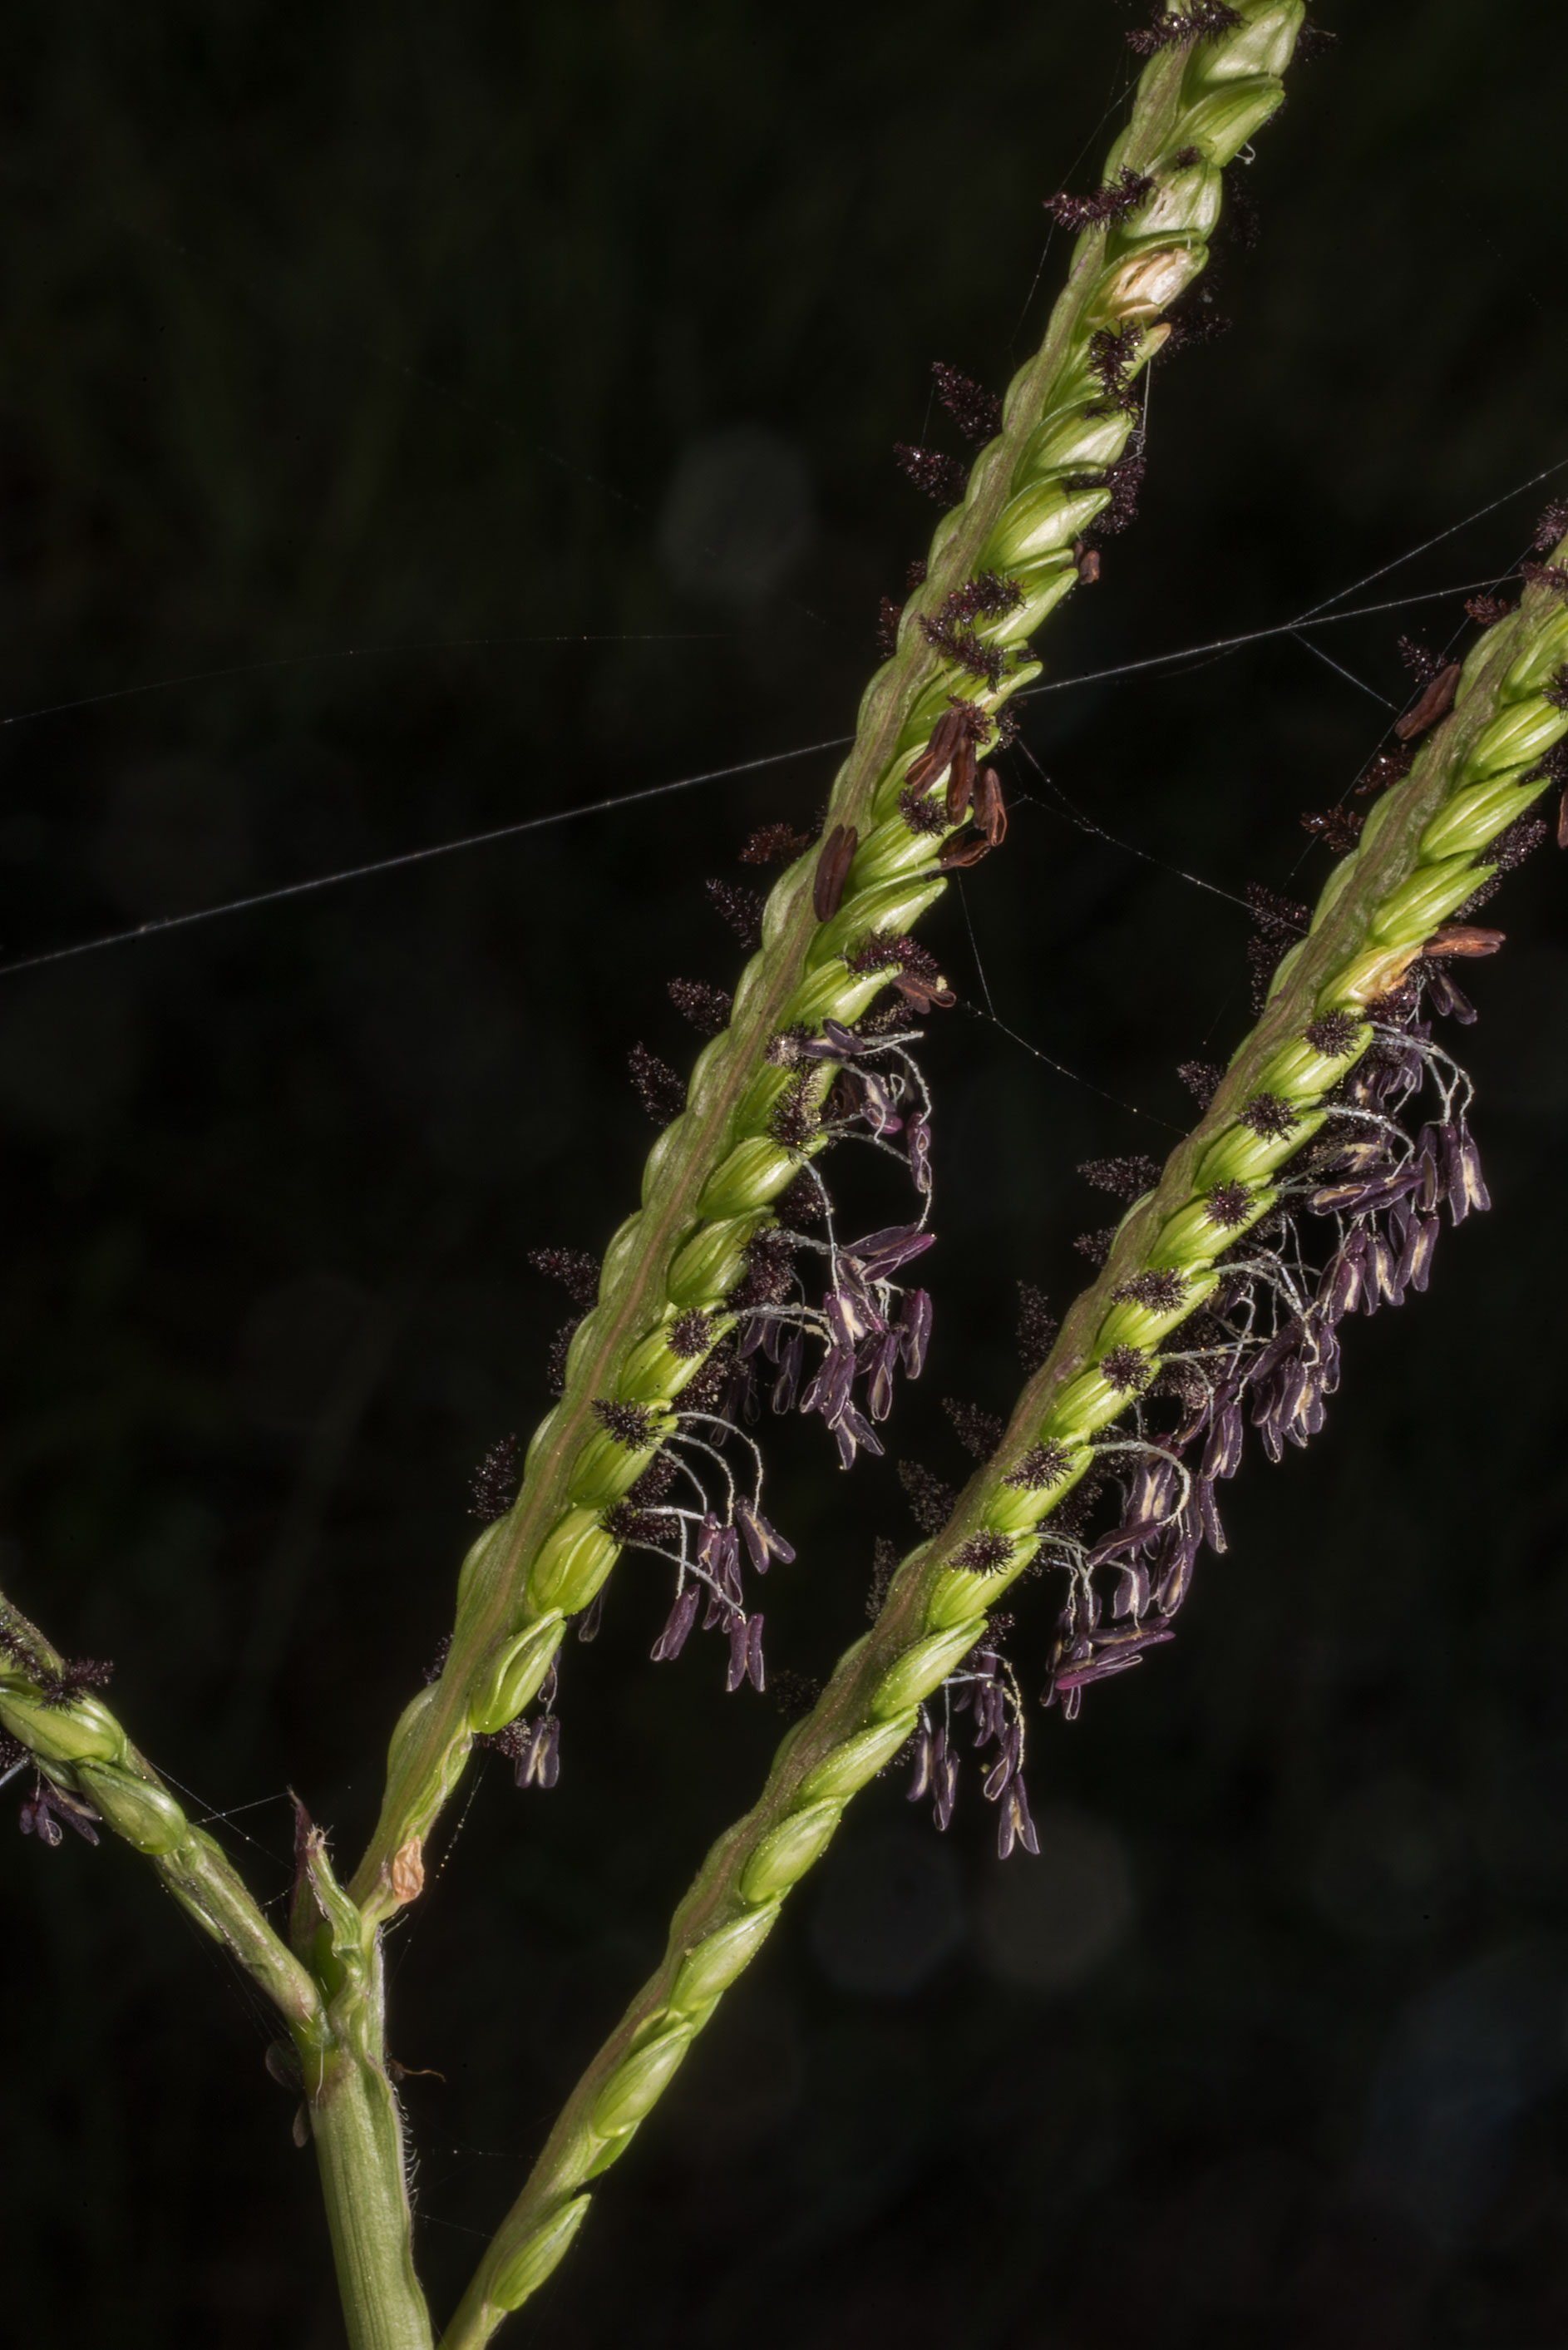 Bahia grass (Paspalum notatum) with black anthers...State Historic Site. Washington, Texas